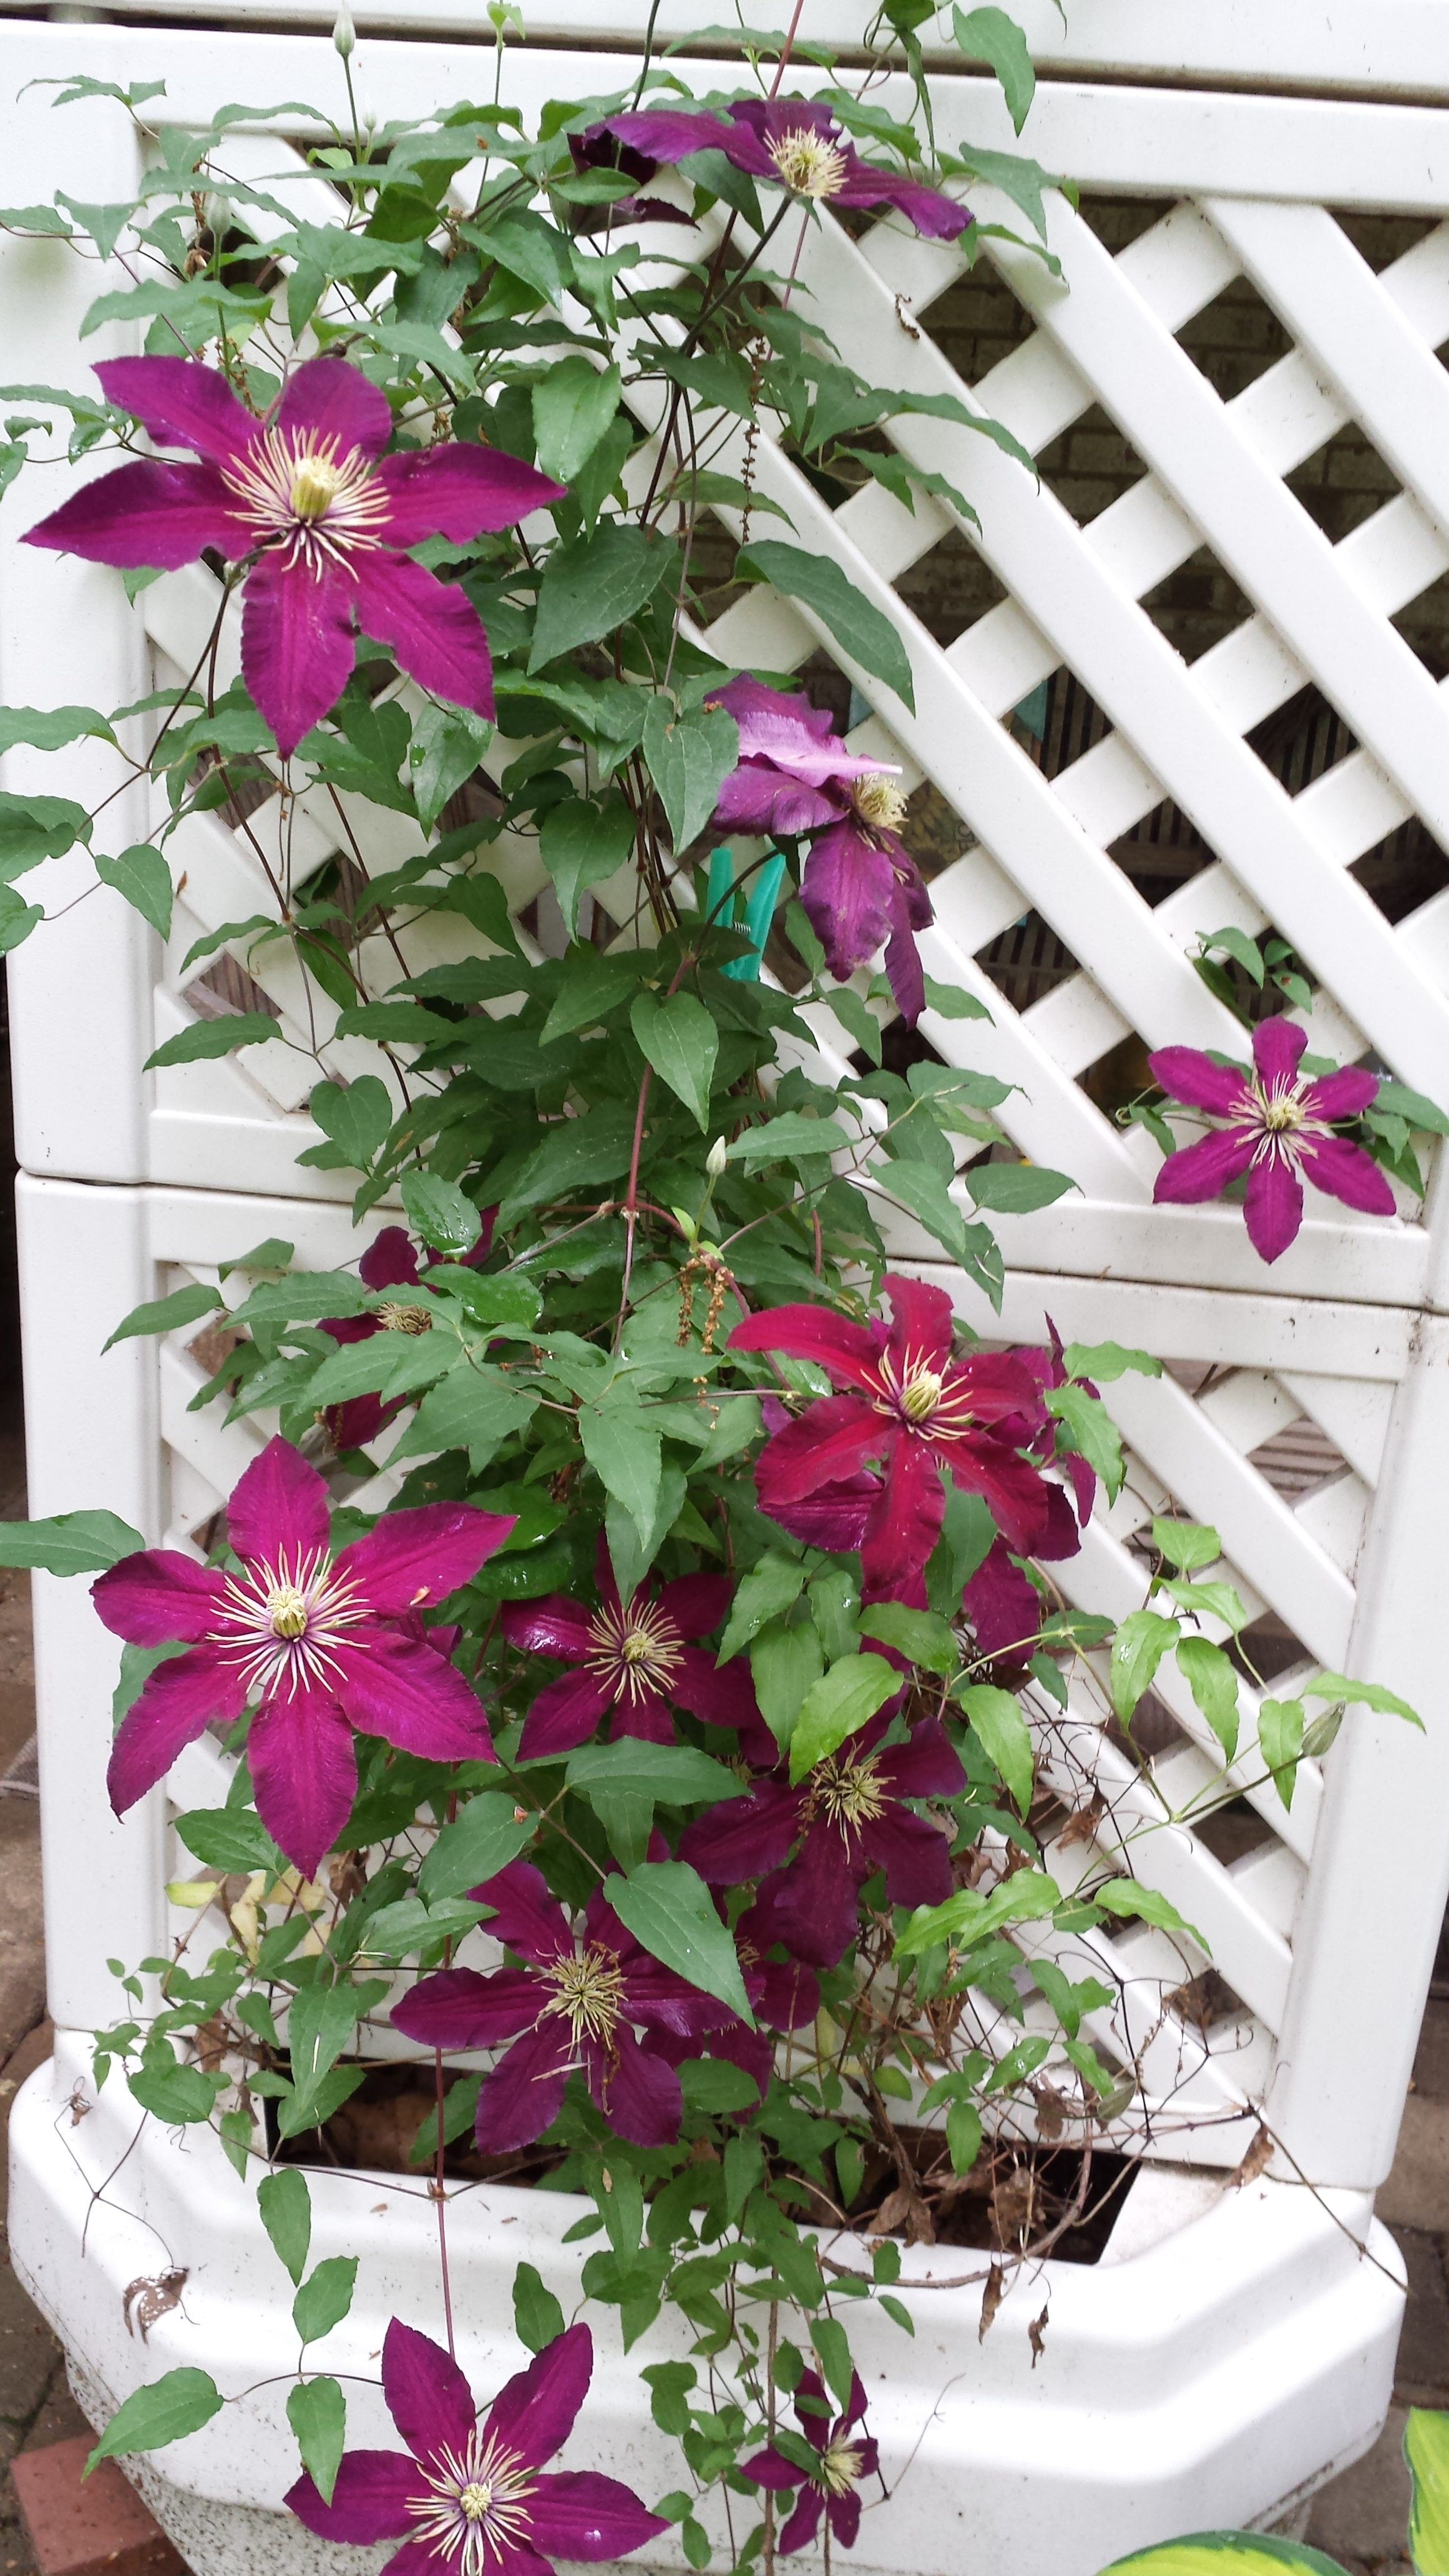 This clematis vine went gangbusters this year!